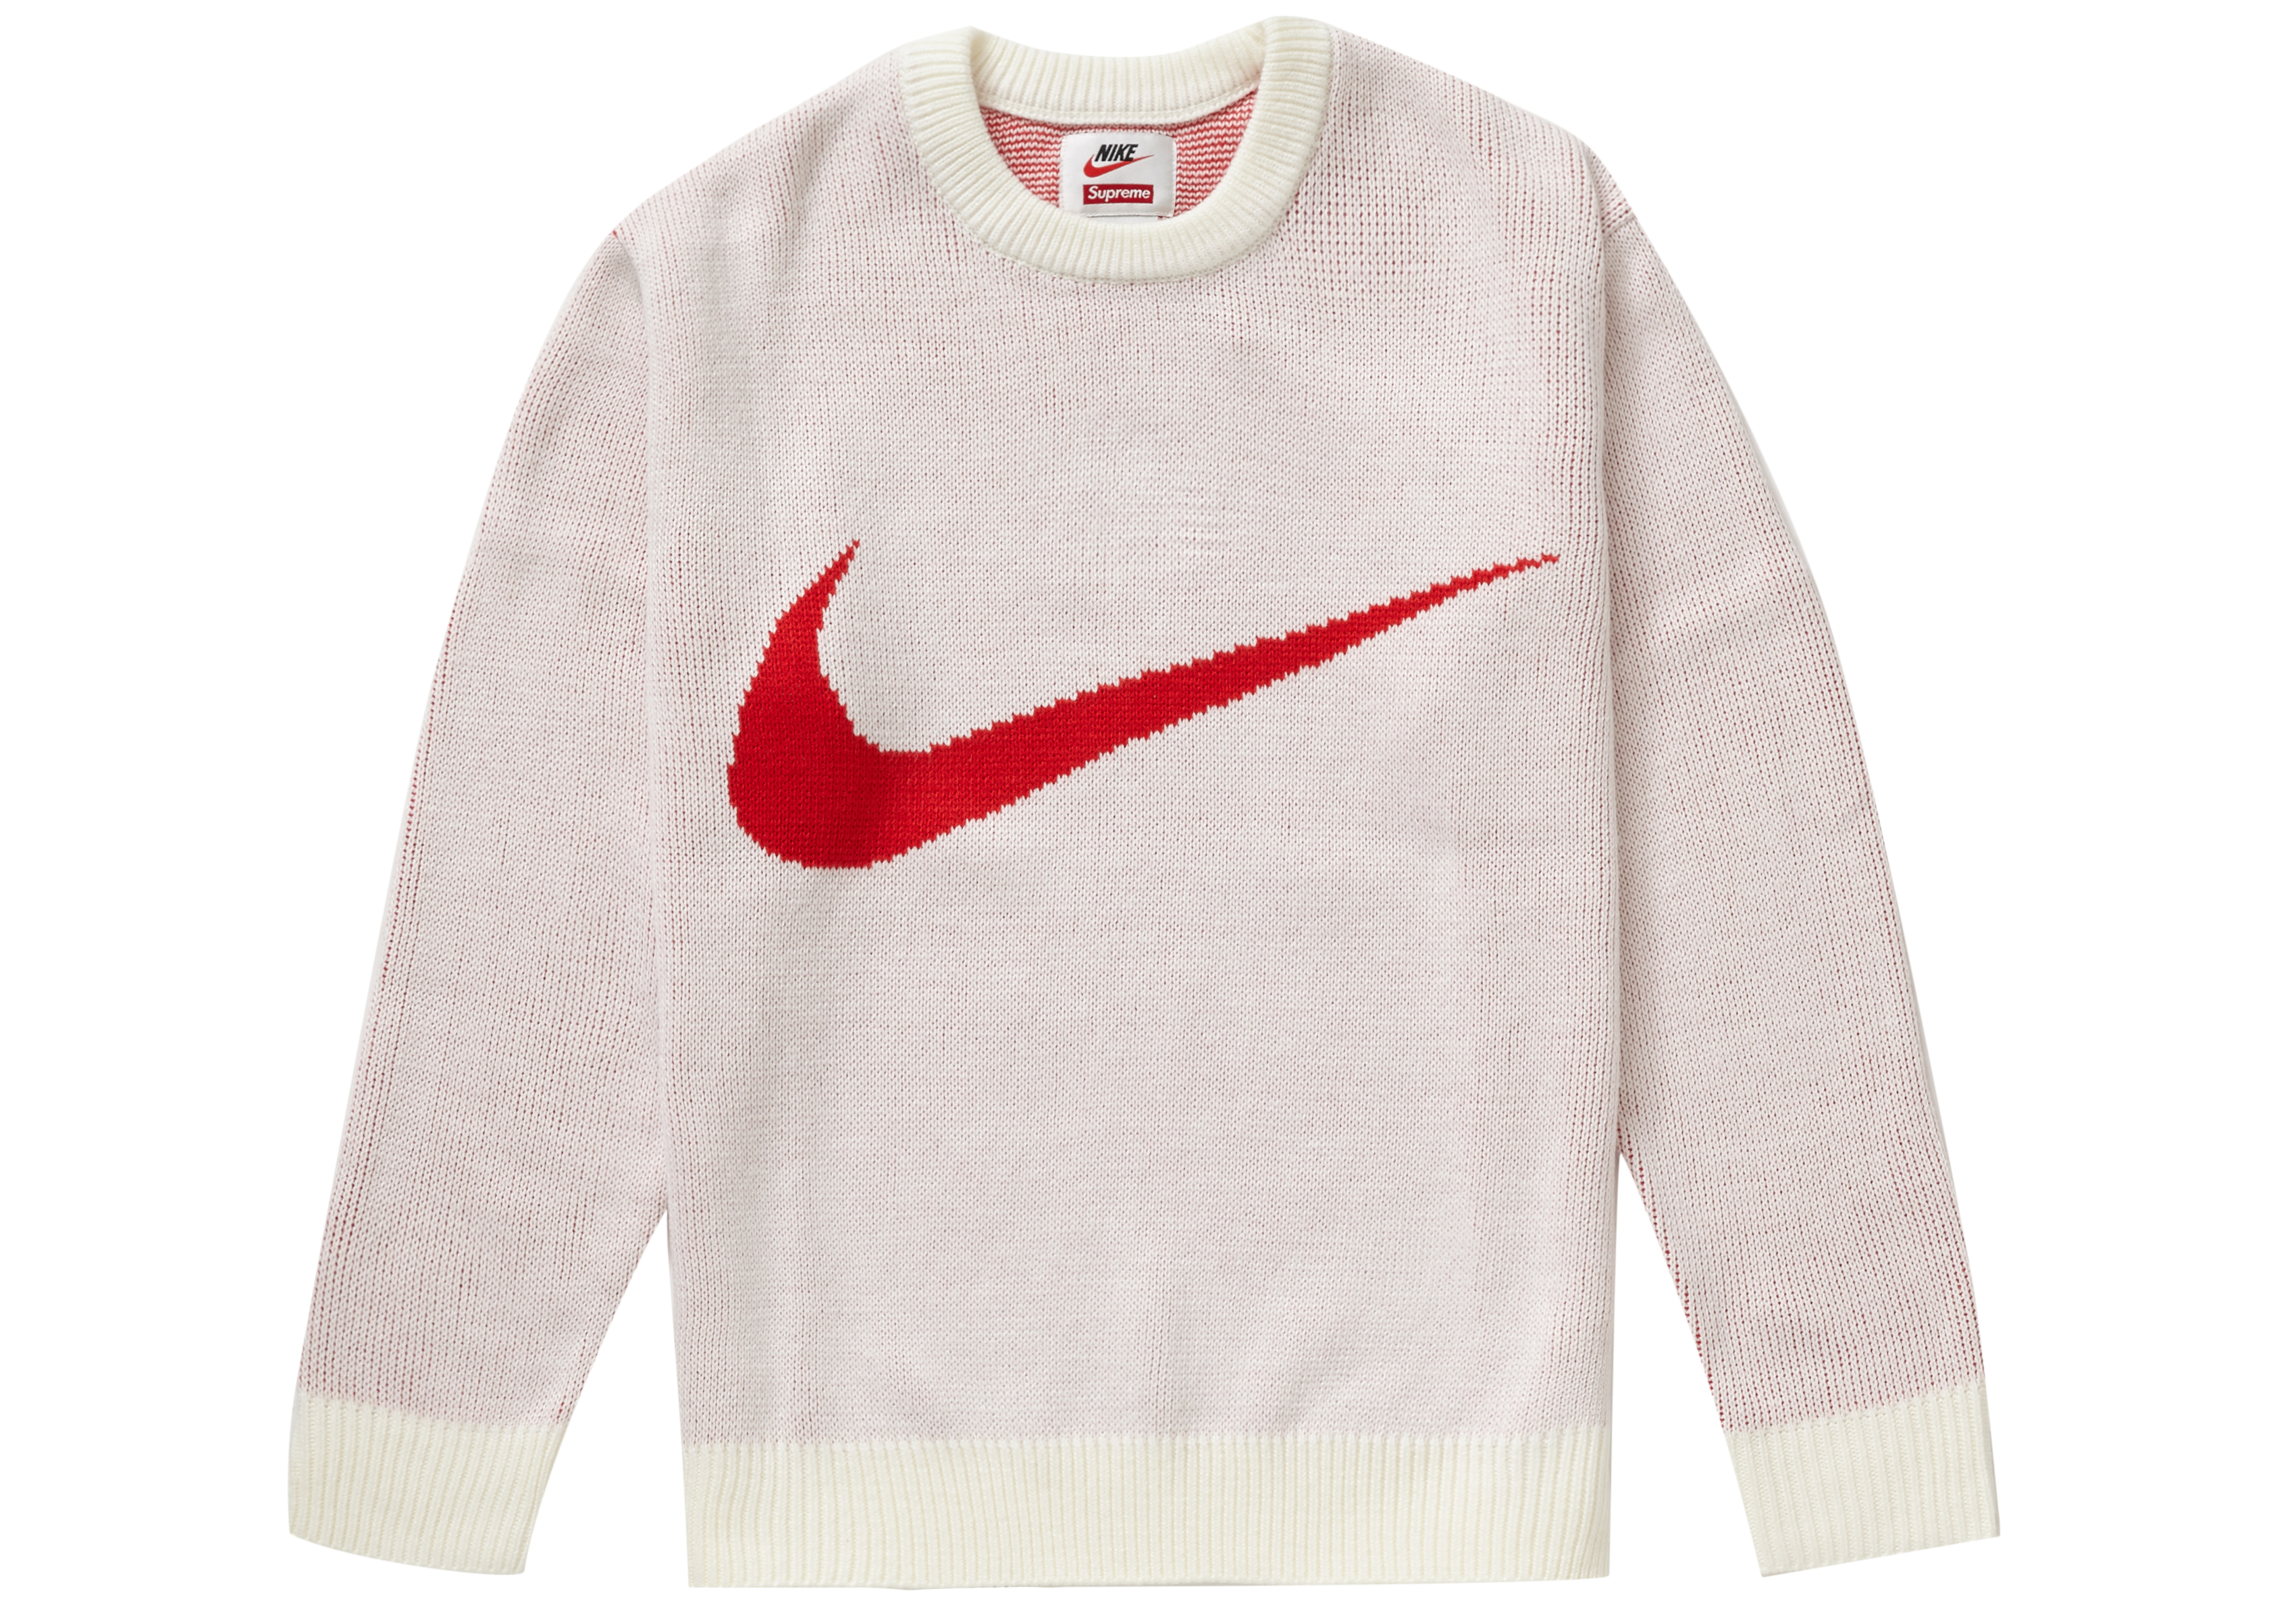 Supreme Nike Swoosh Sweater White - SS19